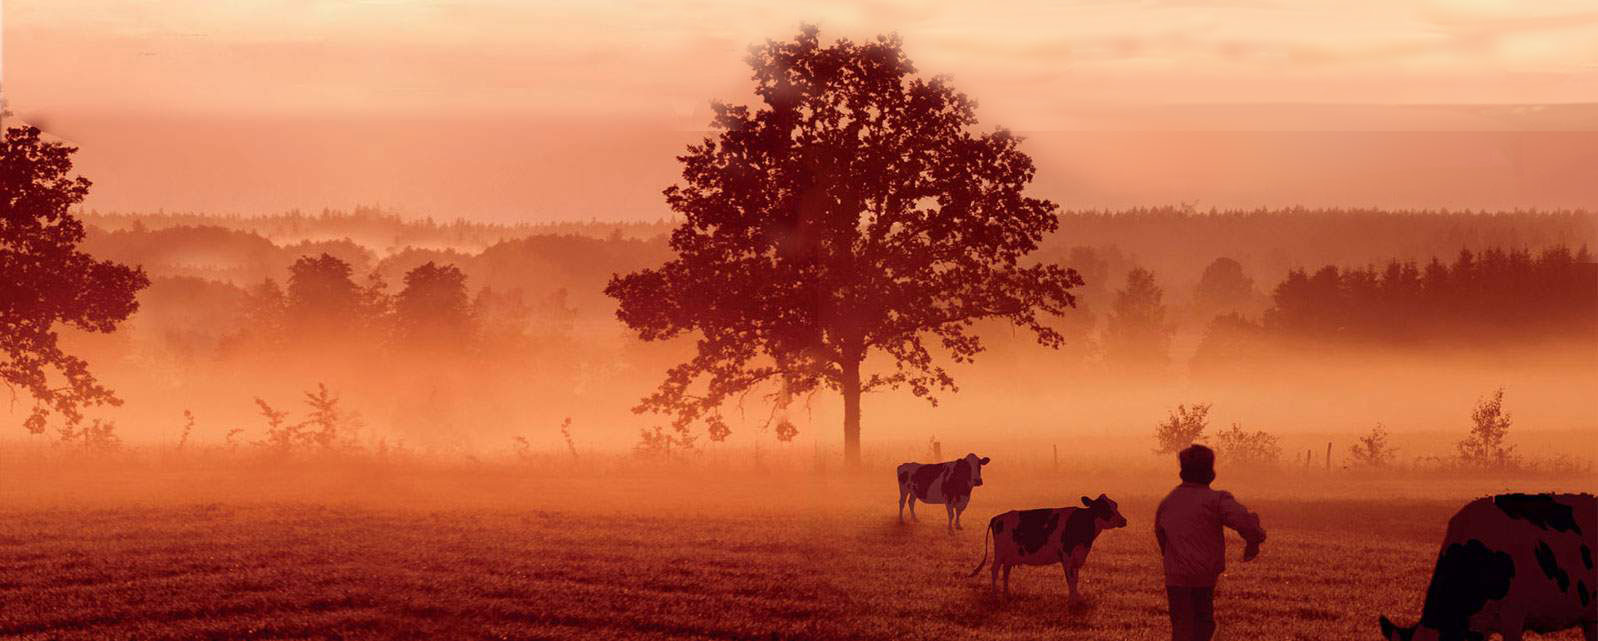 Cows in the Fog by S.T. Haggerty